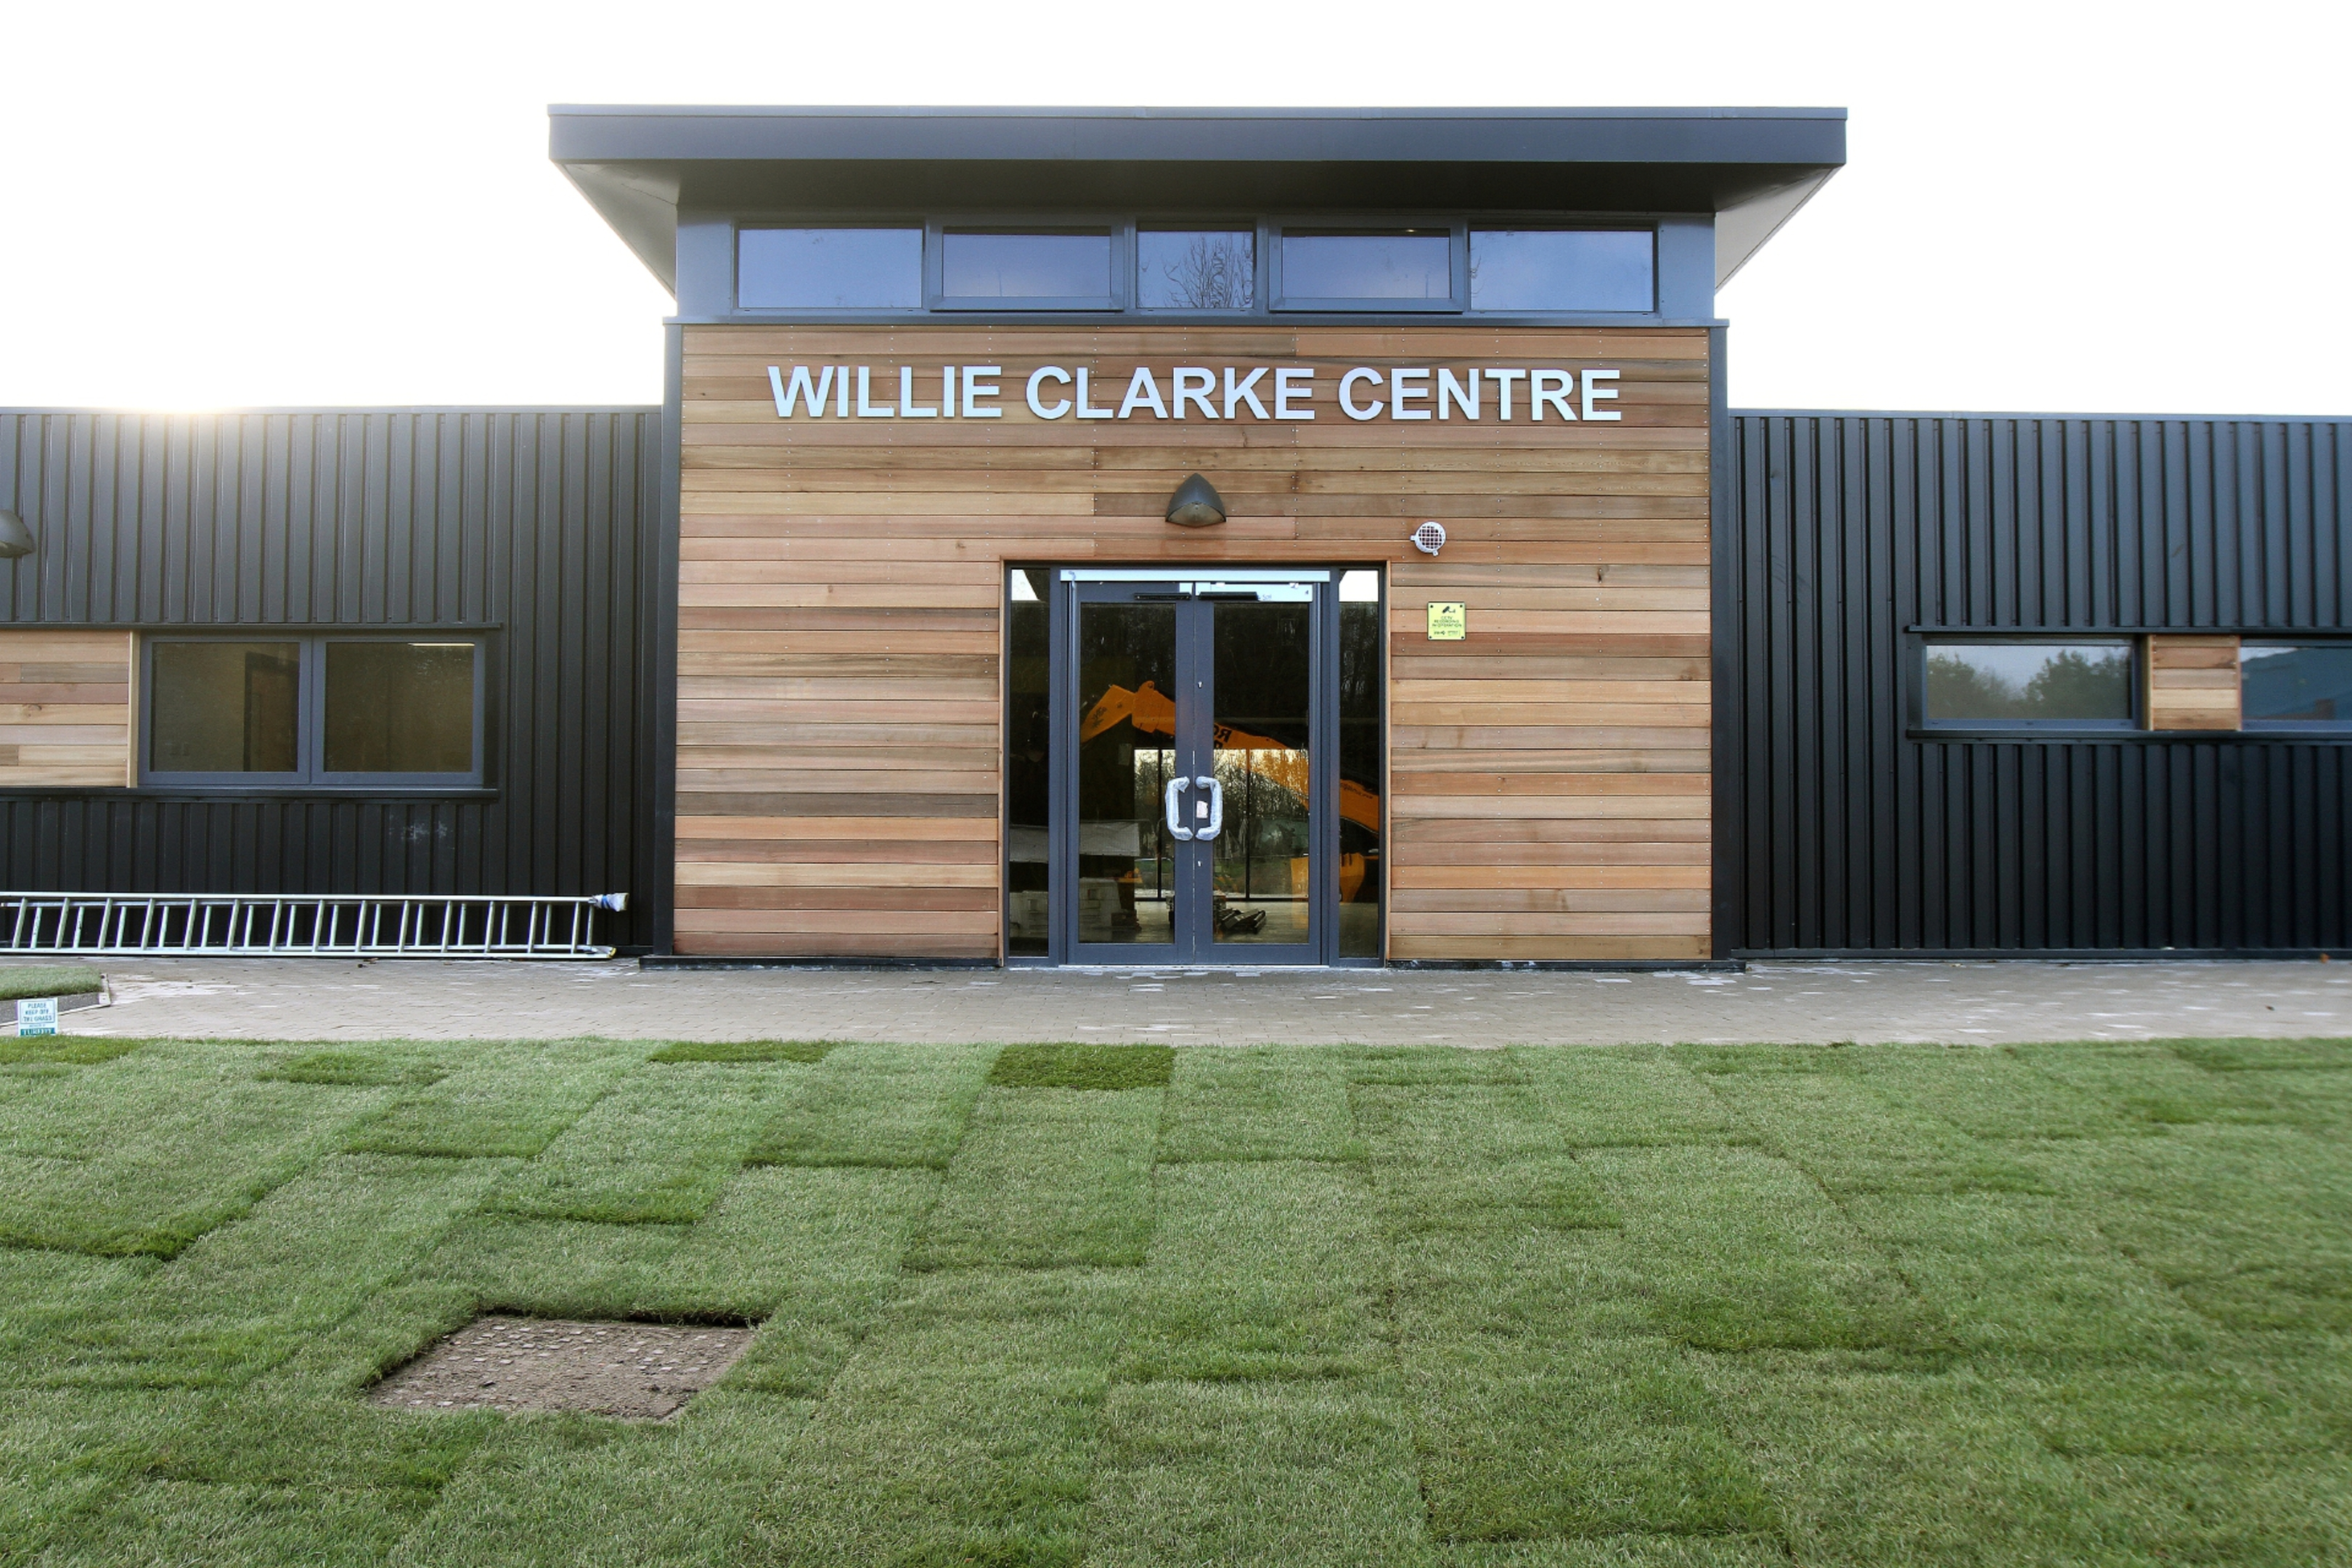 The Willie Clarke centre